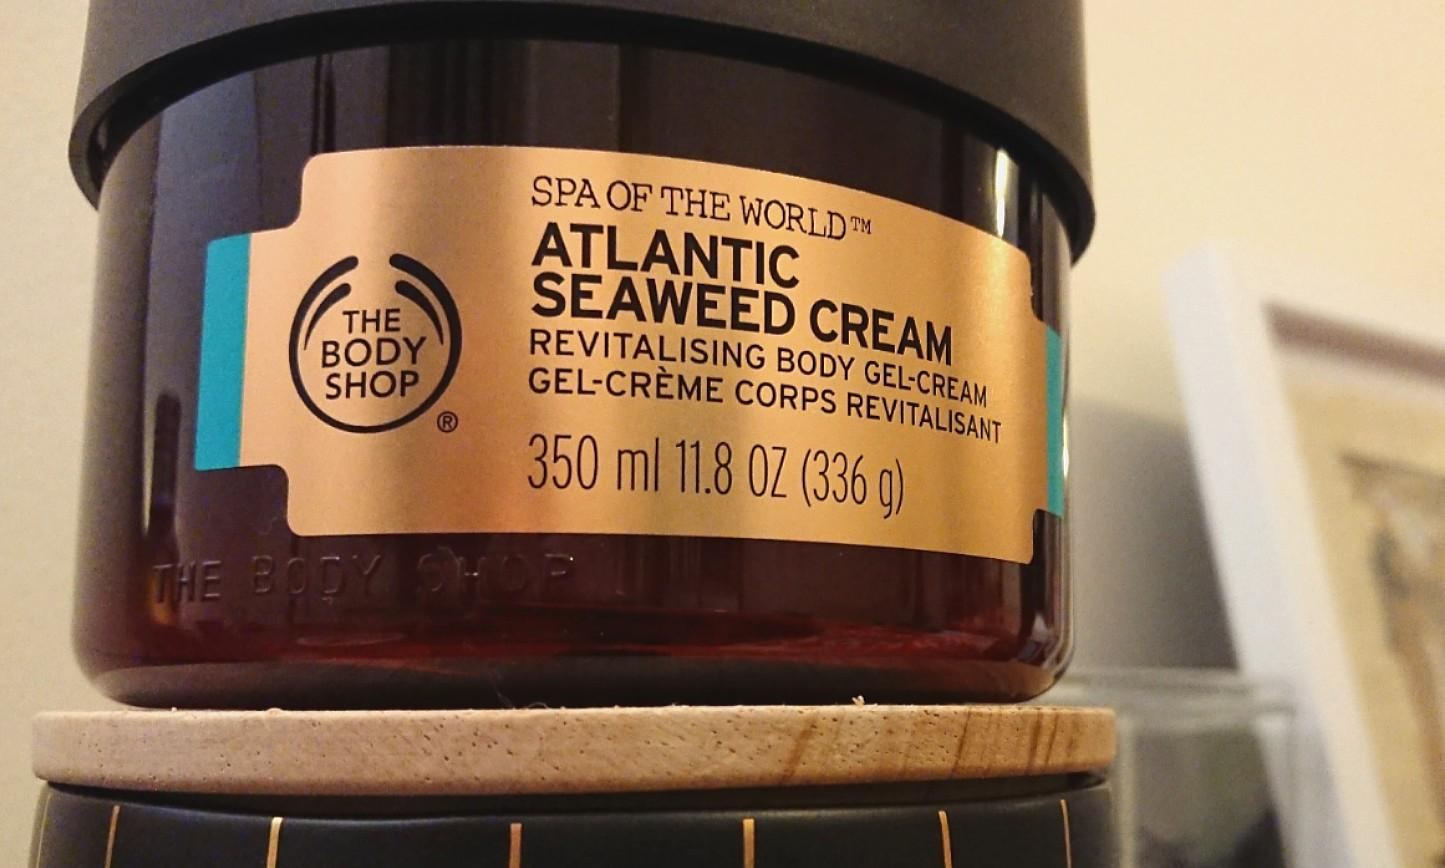 The Body Shop - Spa of the World - Atlantic Seaweed Cream